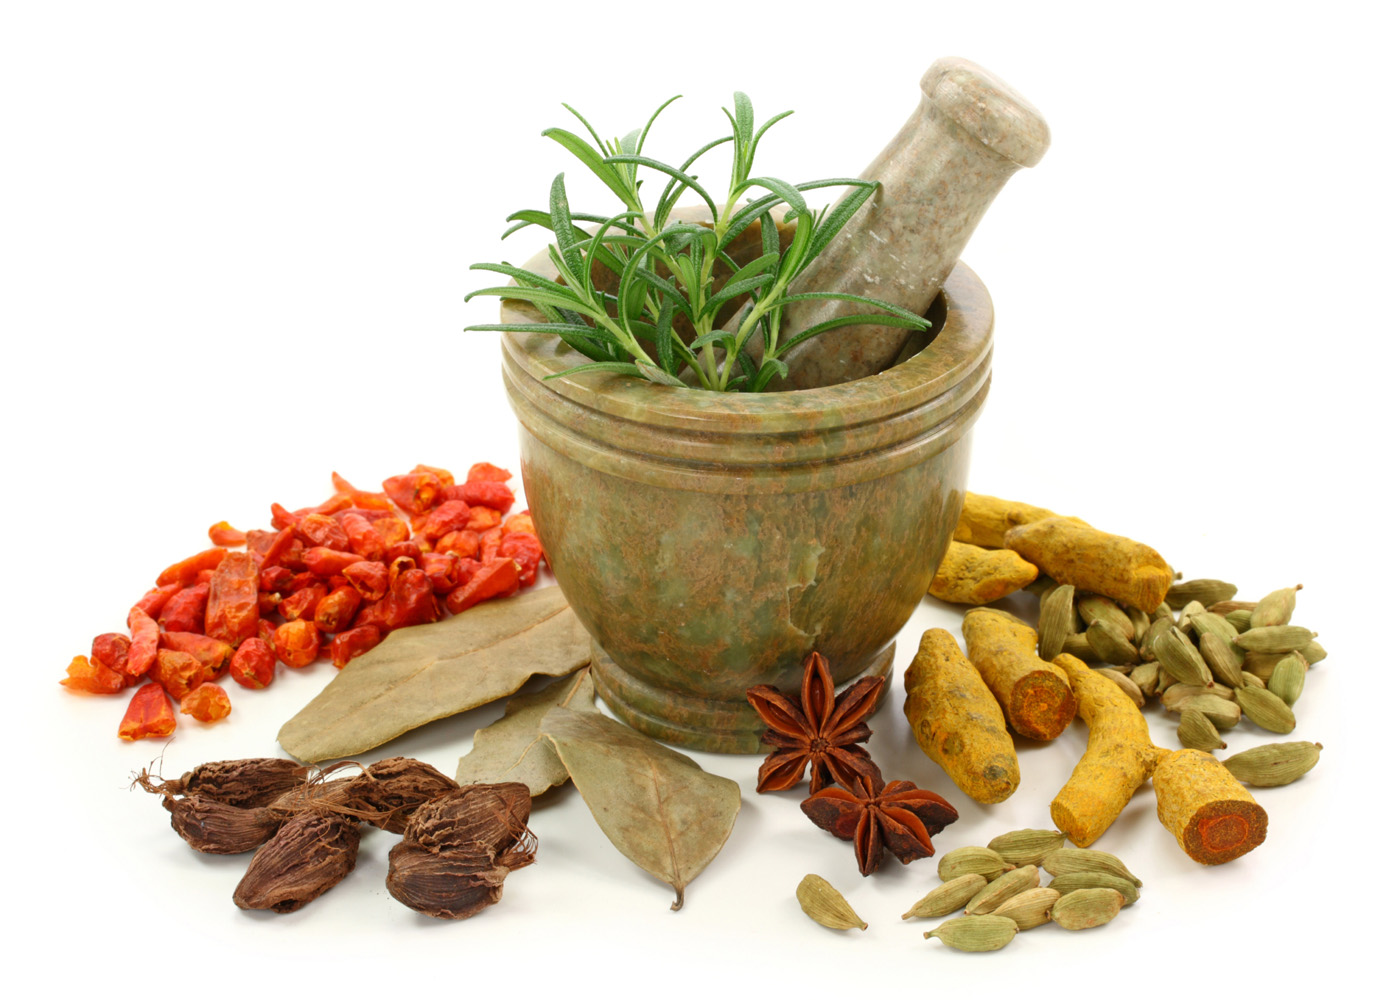 6231-pictures-of-various-spices.jpg